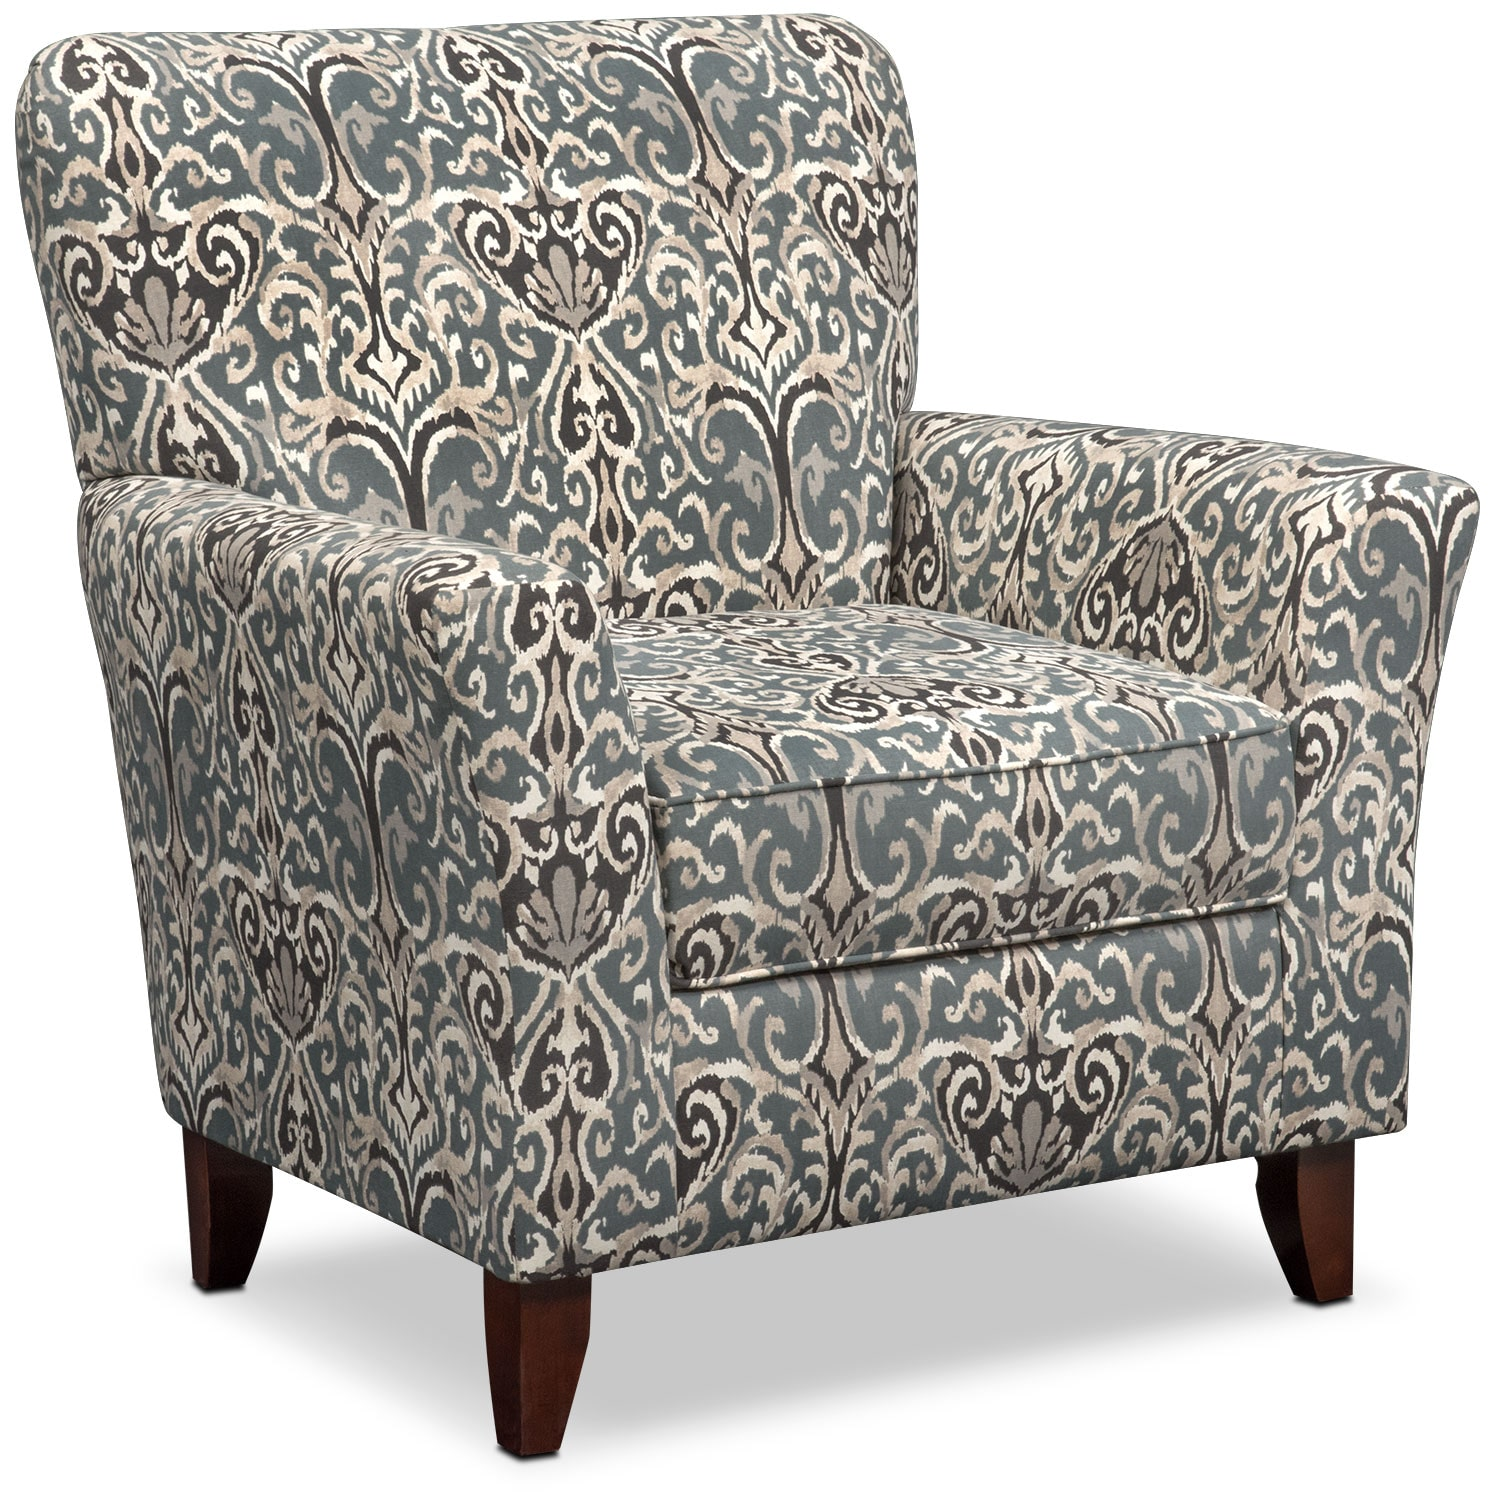 Value City Chairs Carla Accent Chair